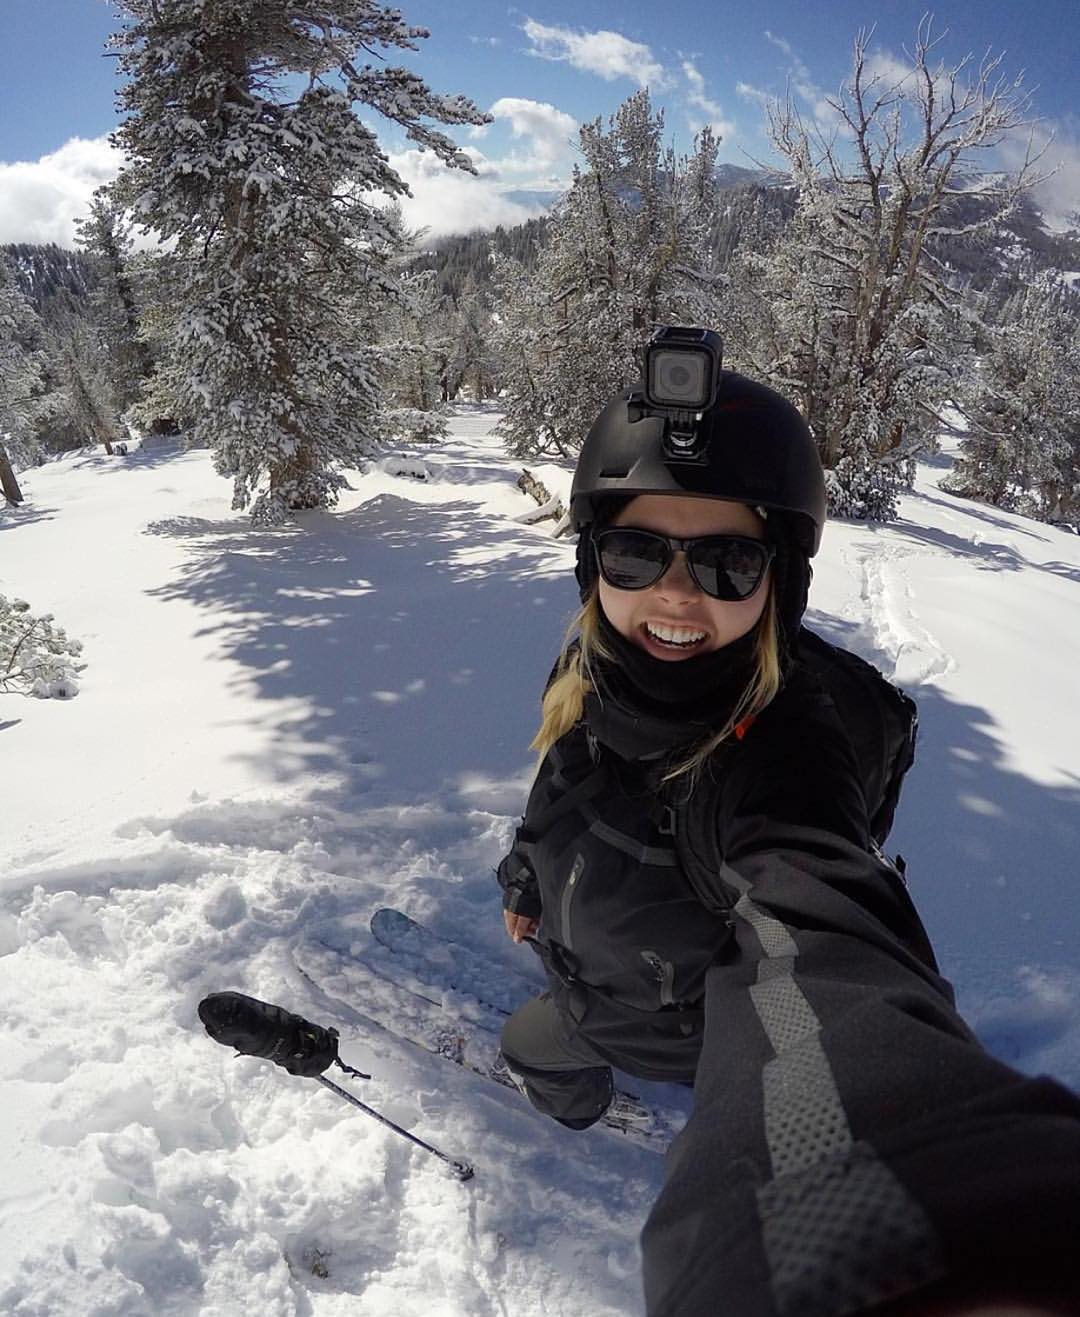 The gnar has been shred @hannahbrie sports the SoCal shades while enjoying some fresh pow #Kameleonz #Skiing #Pow #EnjoyTheRide